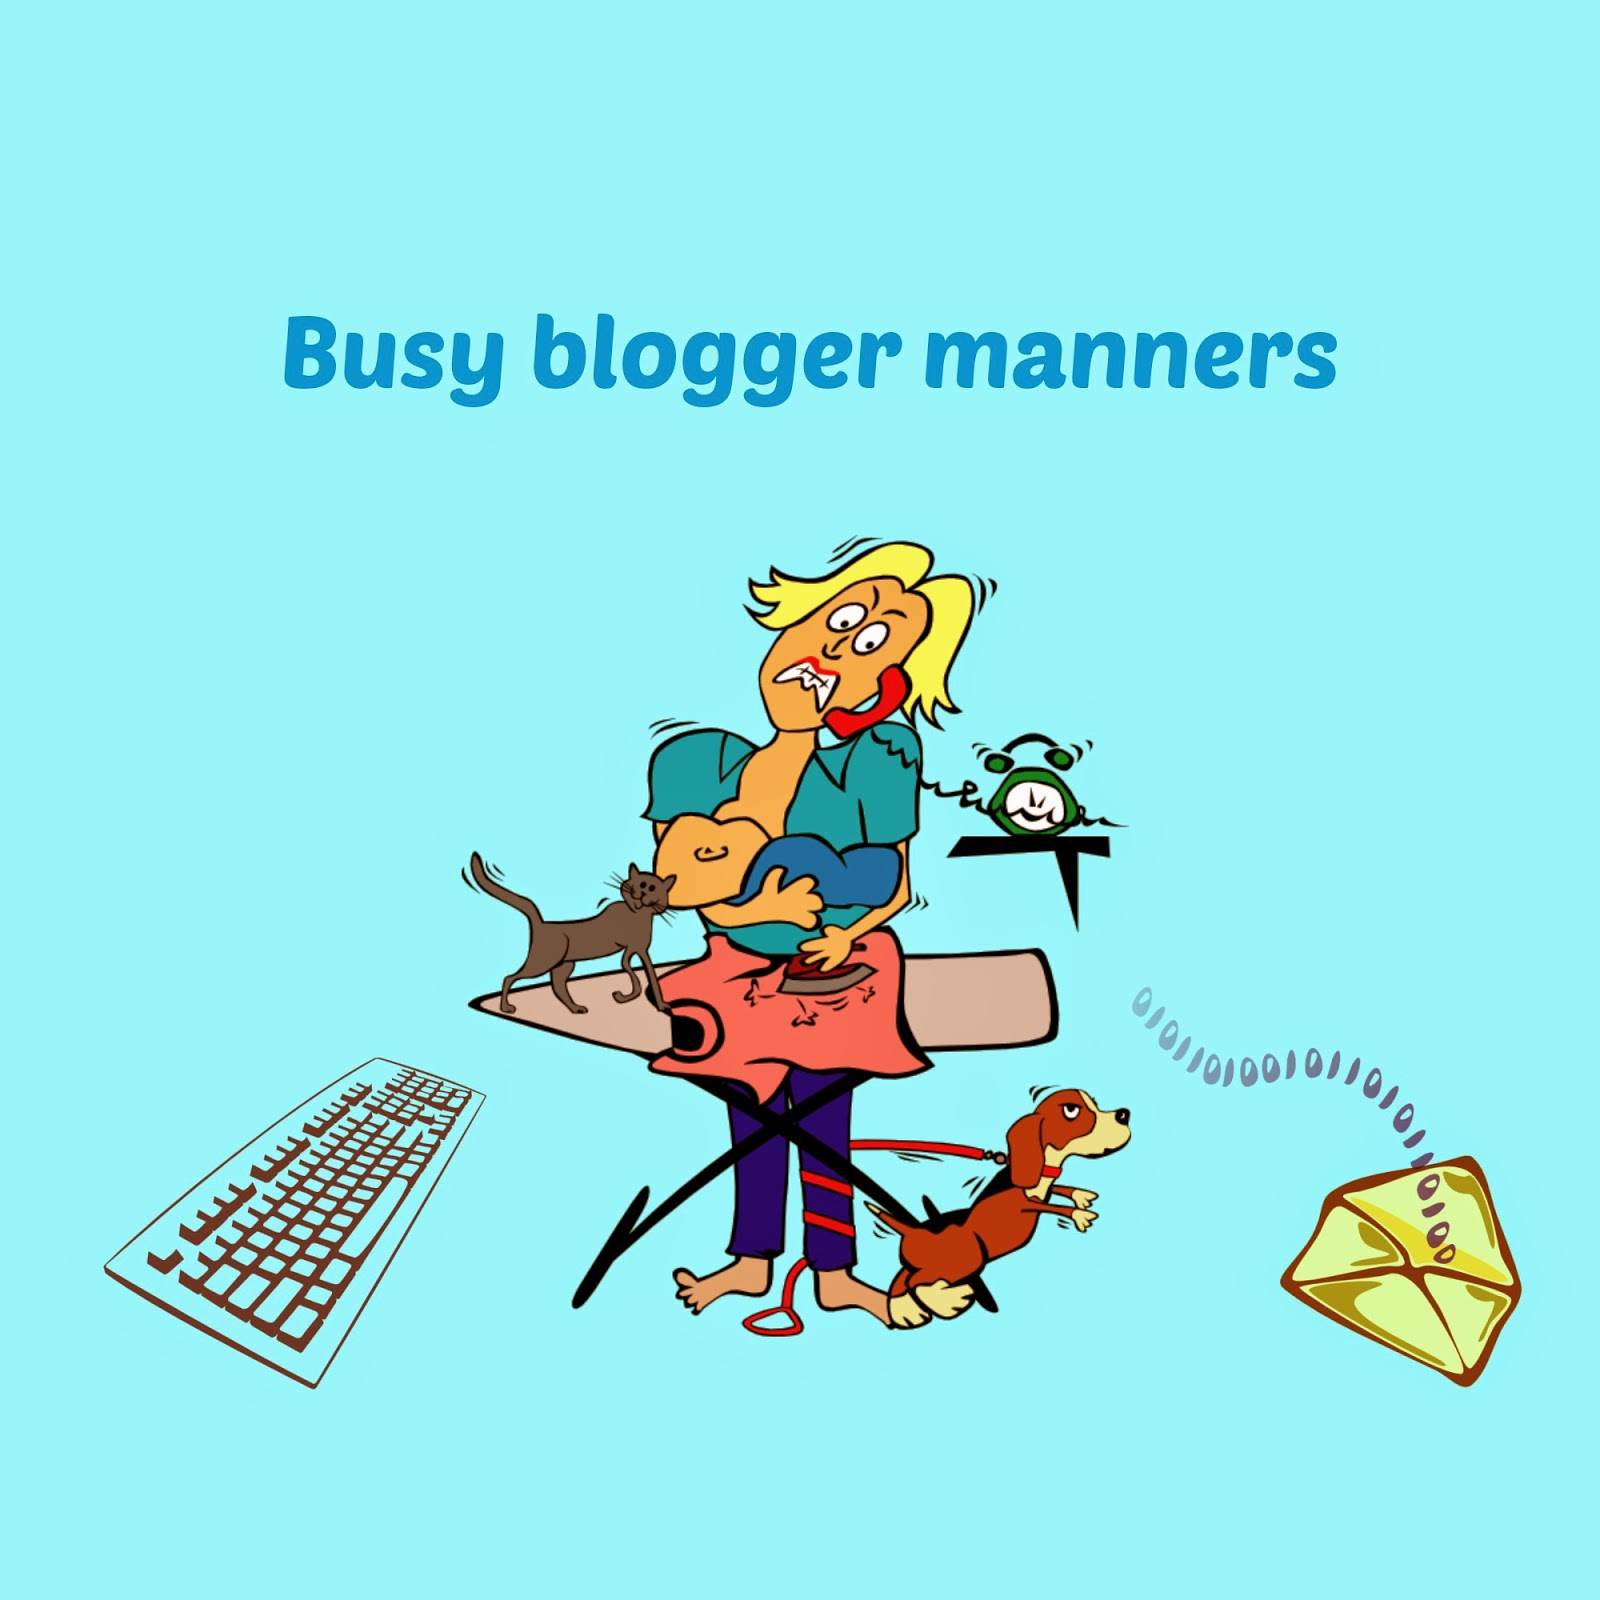 manners and etiquette for bloggers